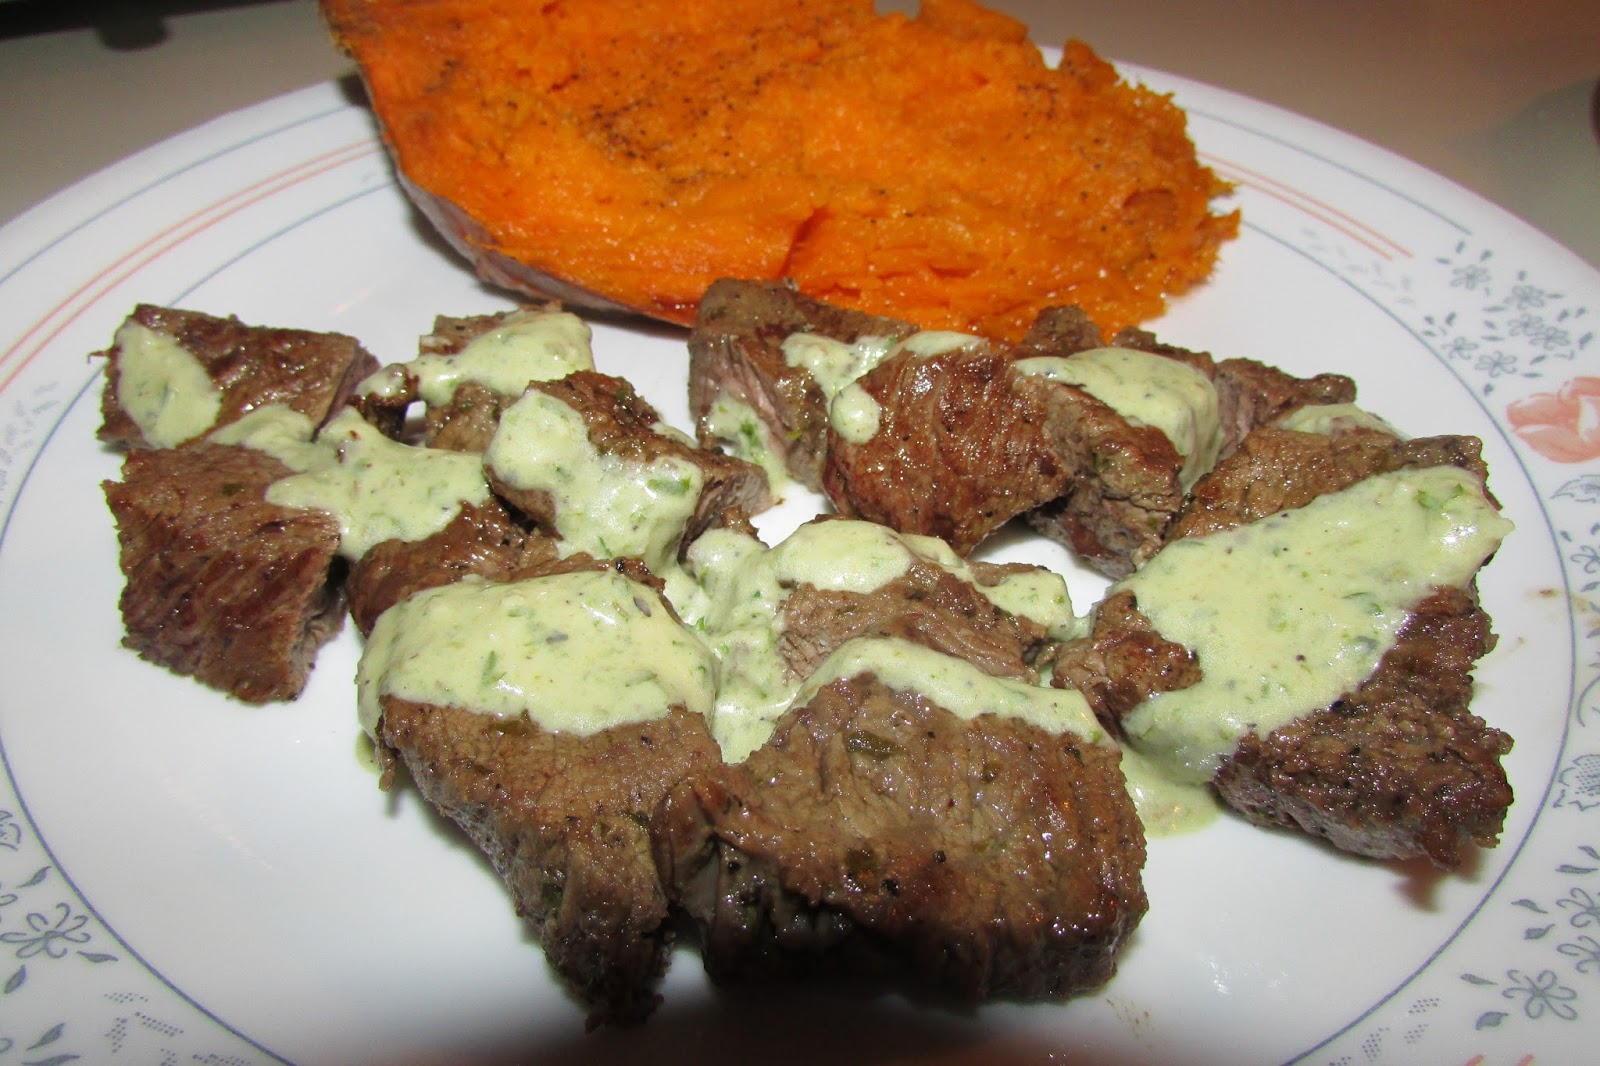 Foodie Mom: Steak tips with a Jalapeño Cucumber Chimichurri Sauce